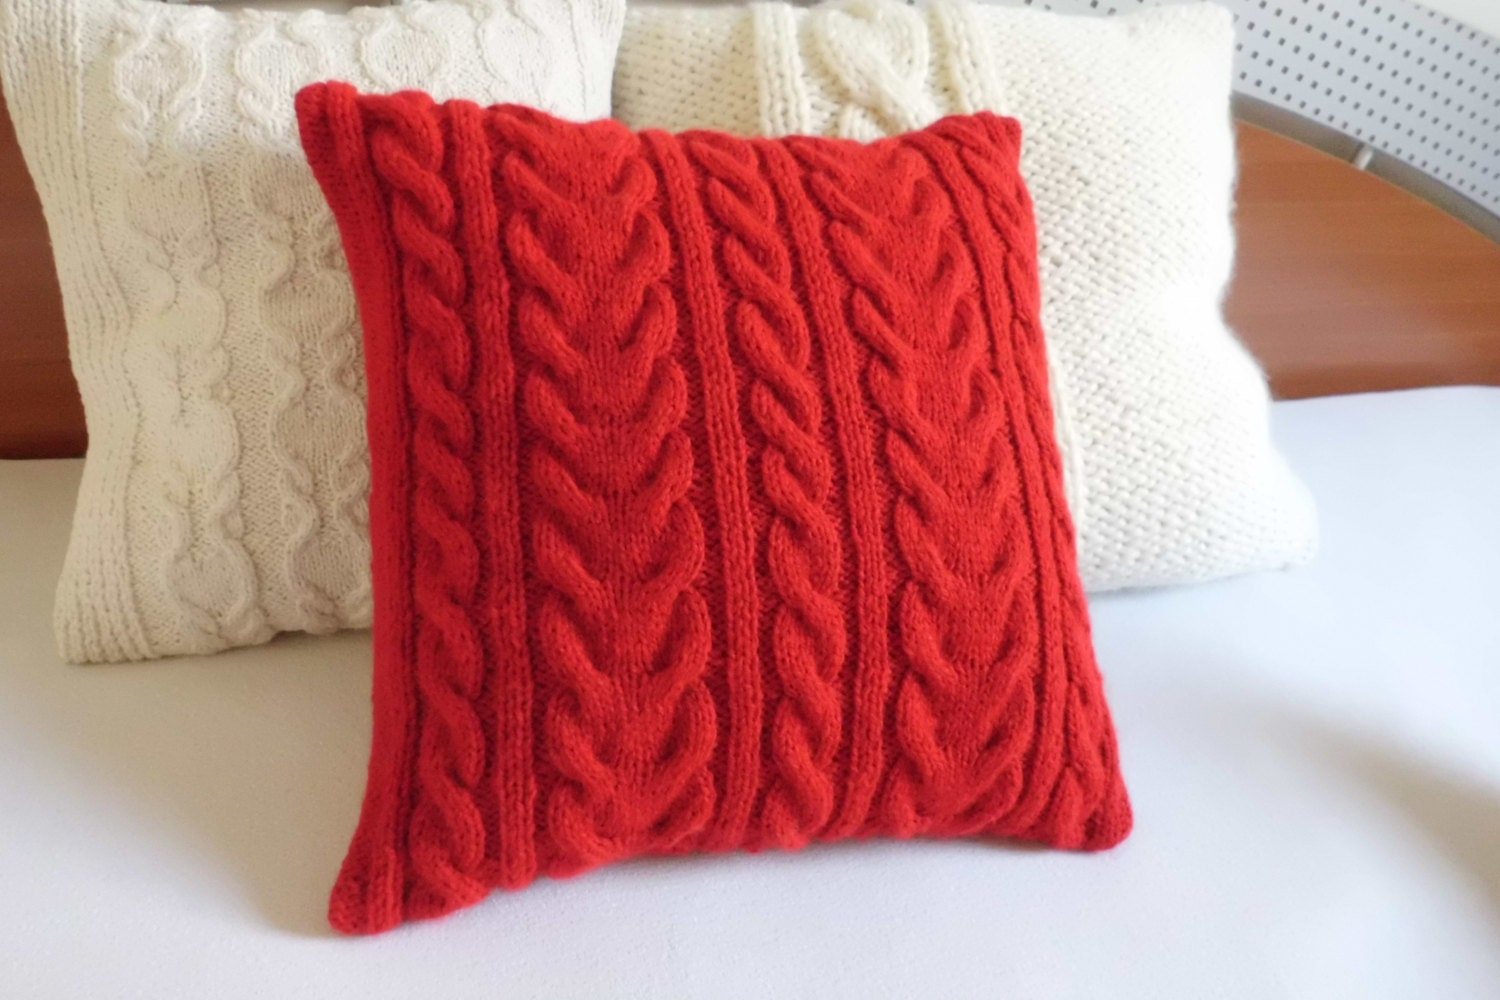 Red Cable Knit Pillow Cover Roselawnlutheran